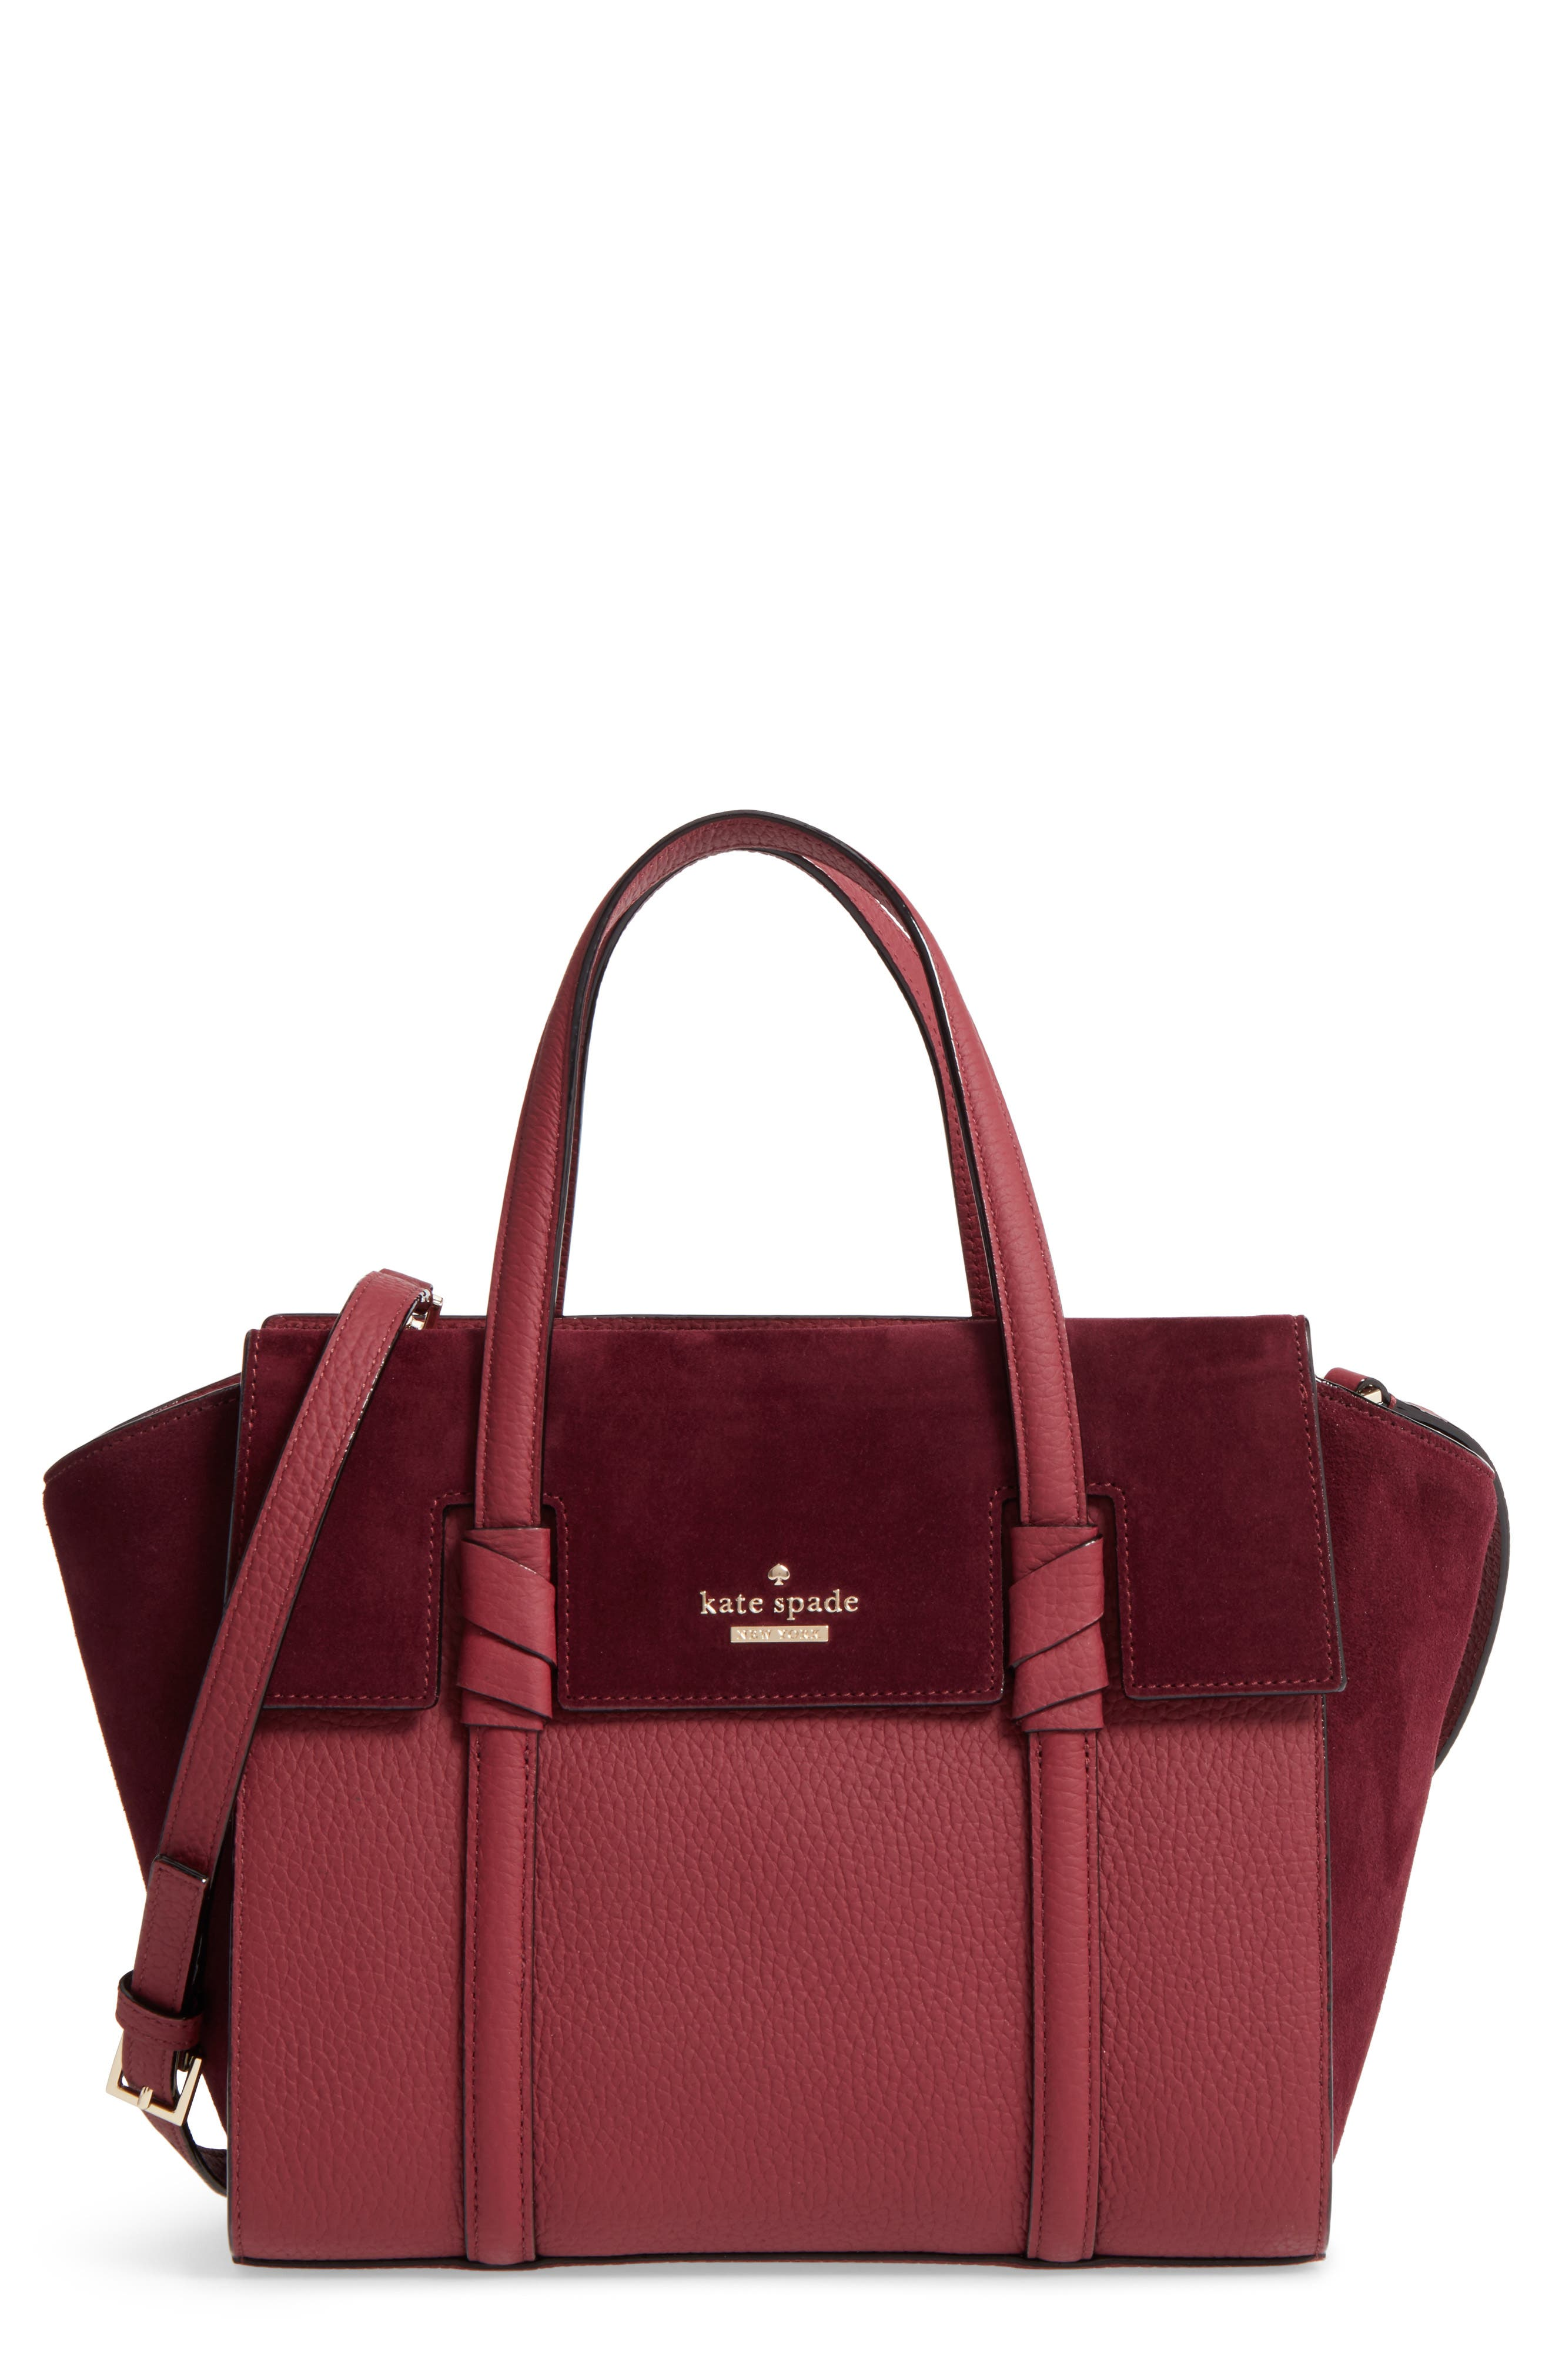 KATE SPADE NEW YORK daniels drive - small abigail suede & leather tote